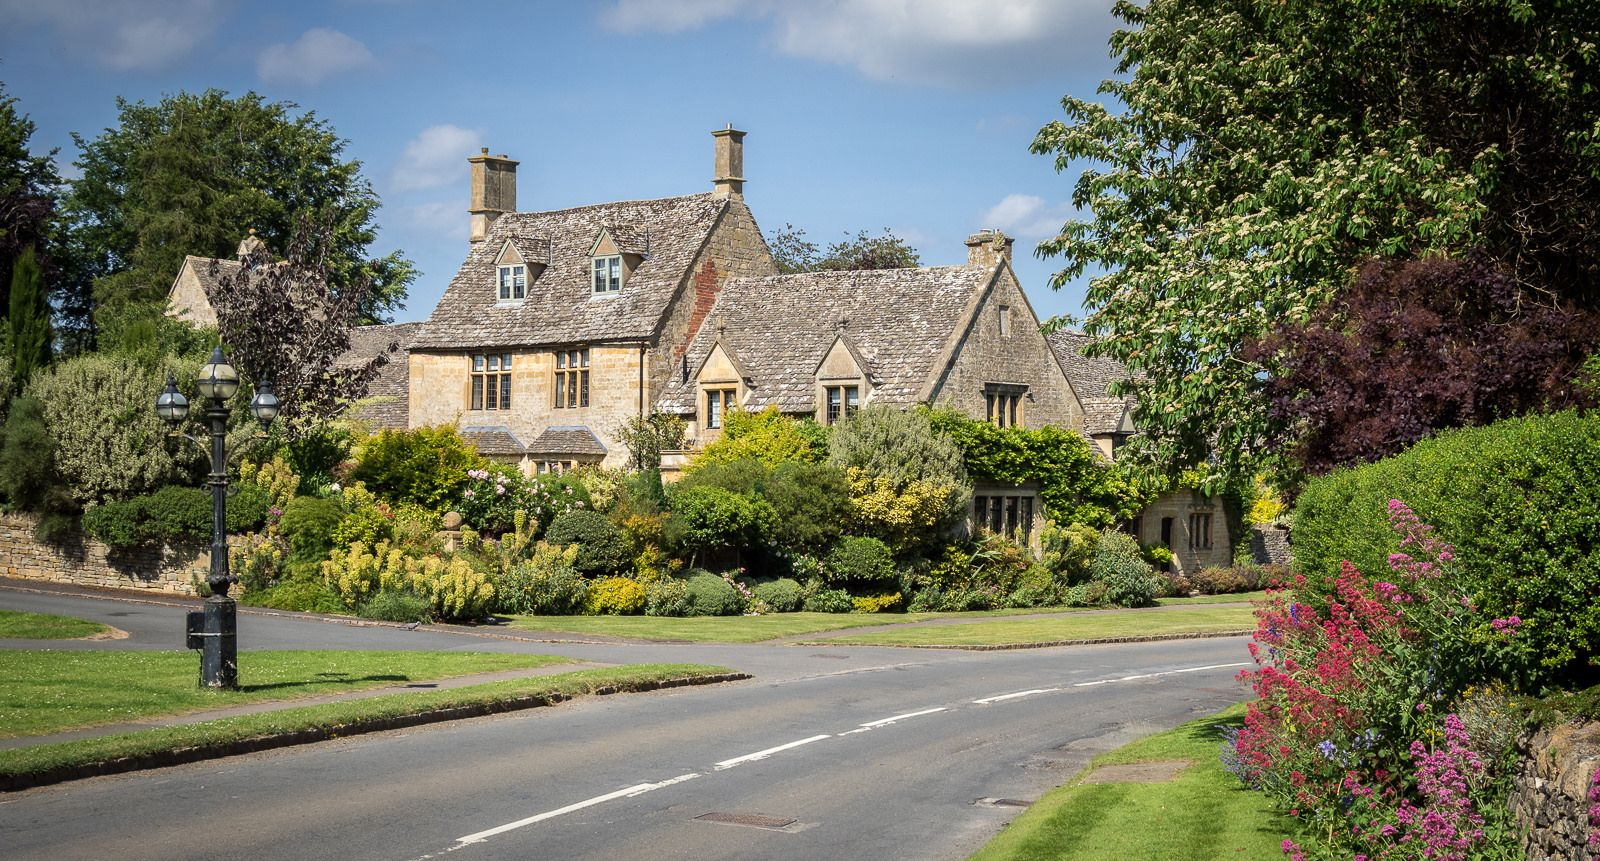 Westington house chipping campden wales scotland and house